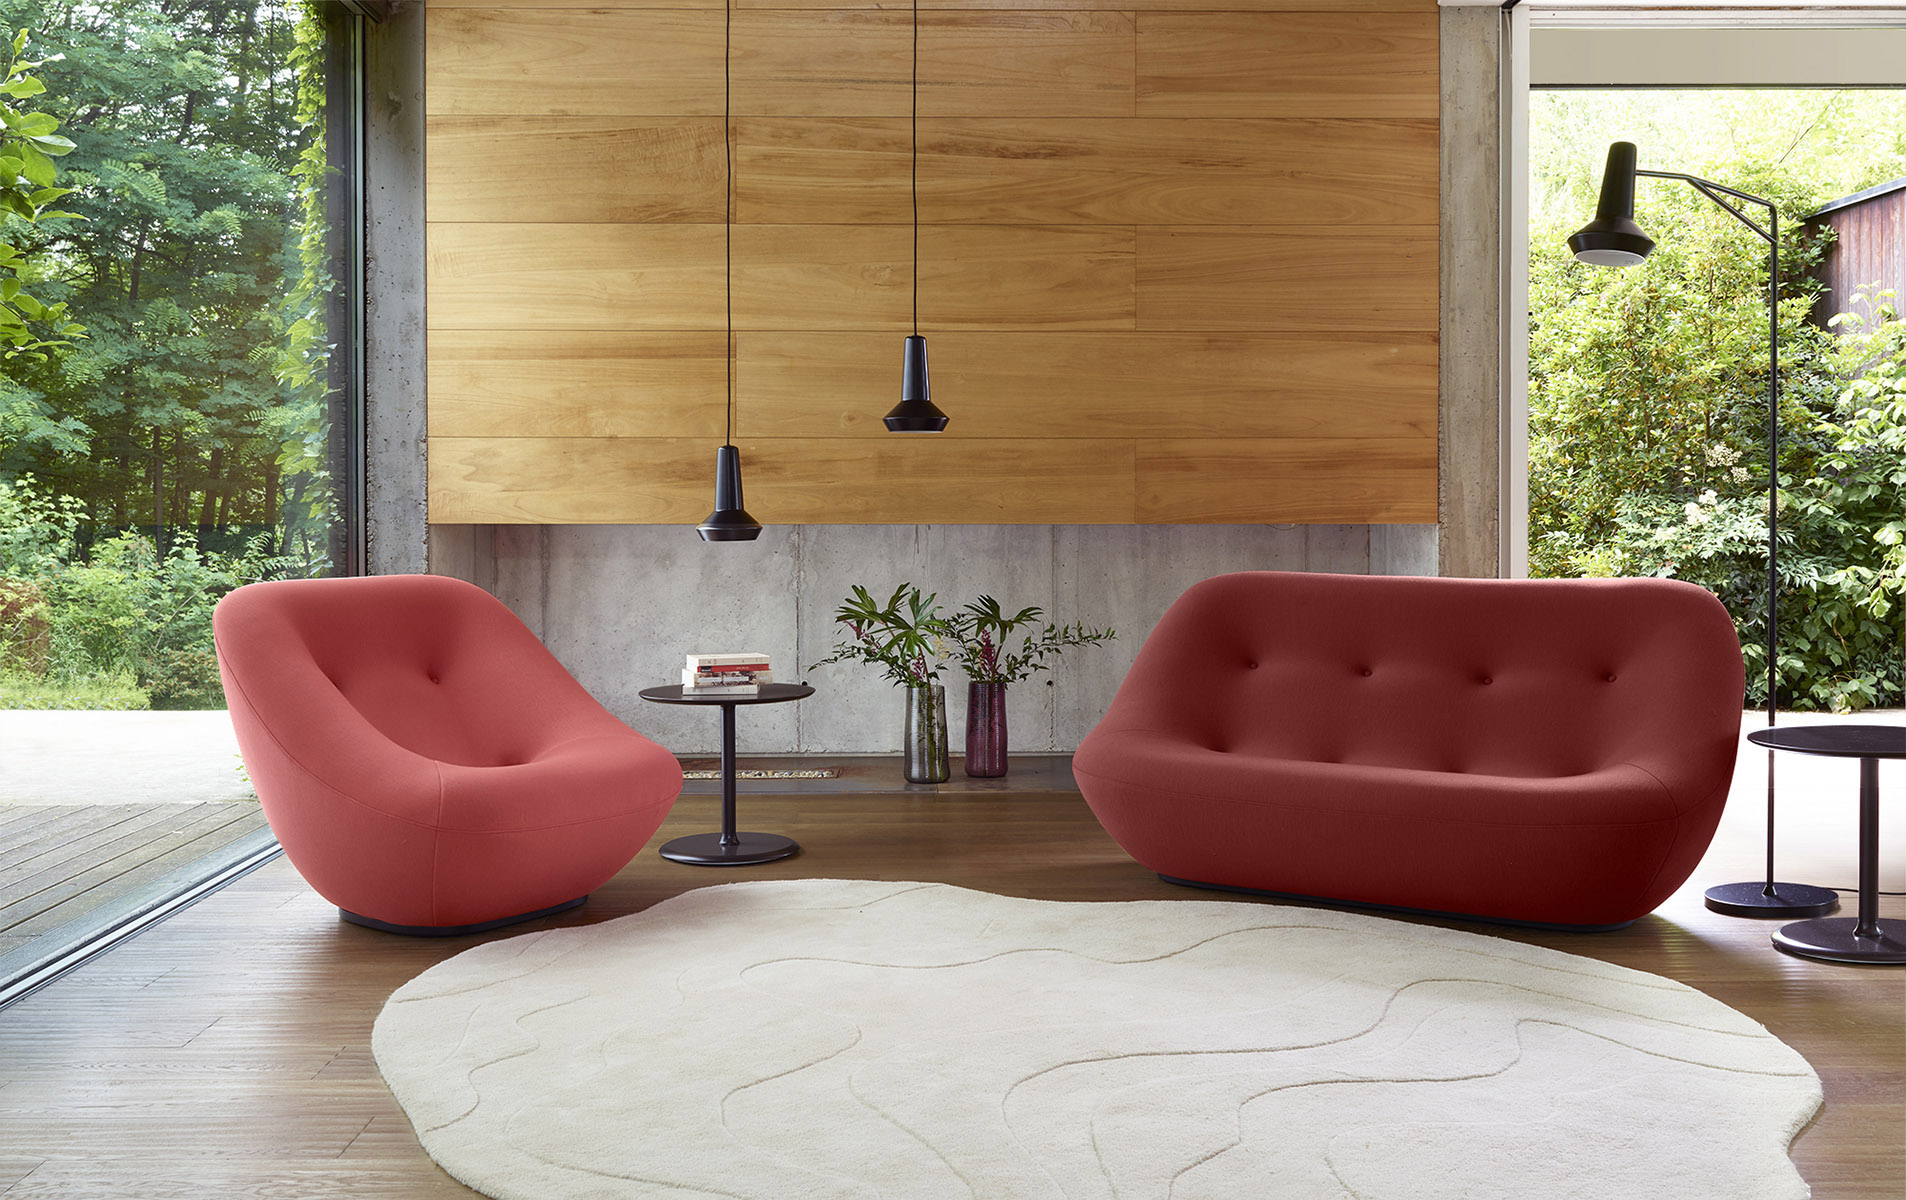 lemoine_int69